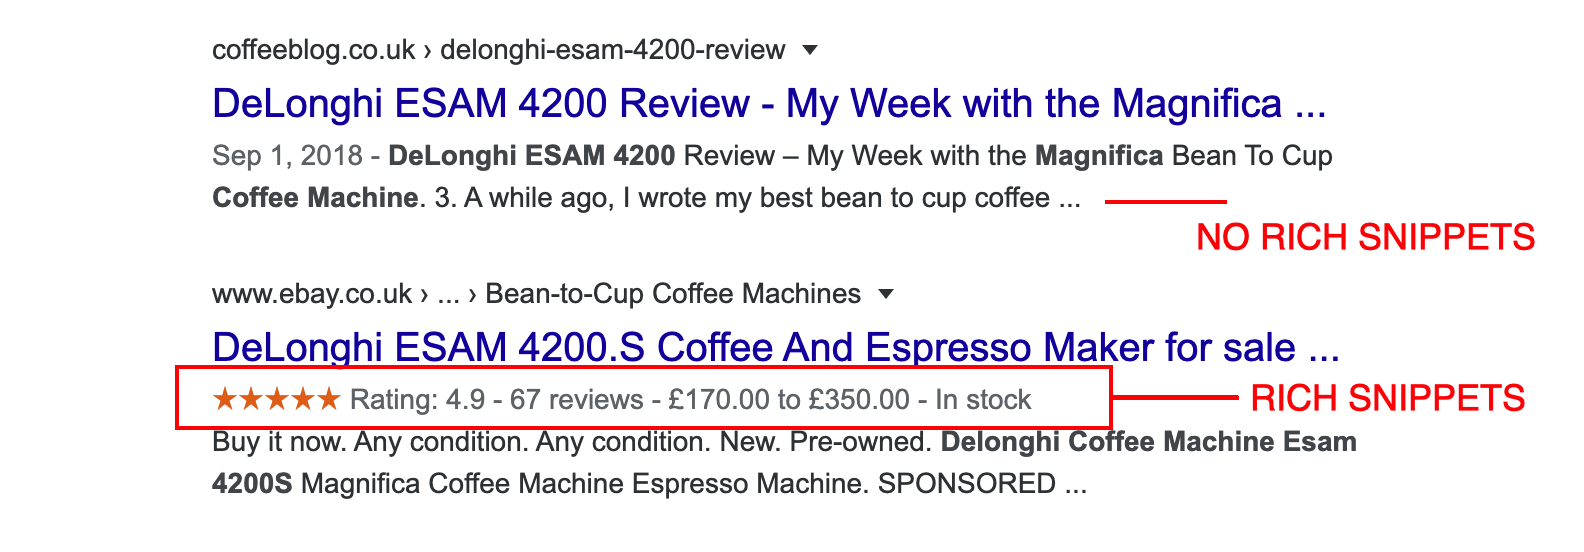 rich snippets - how they show up in the search results